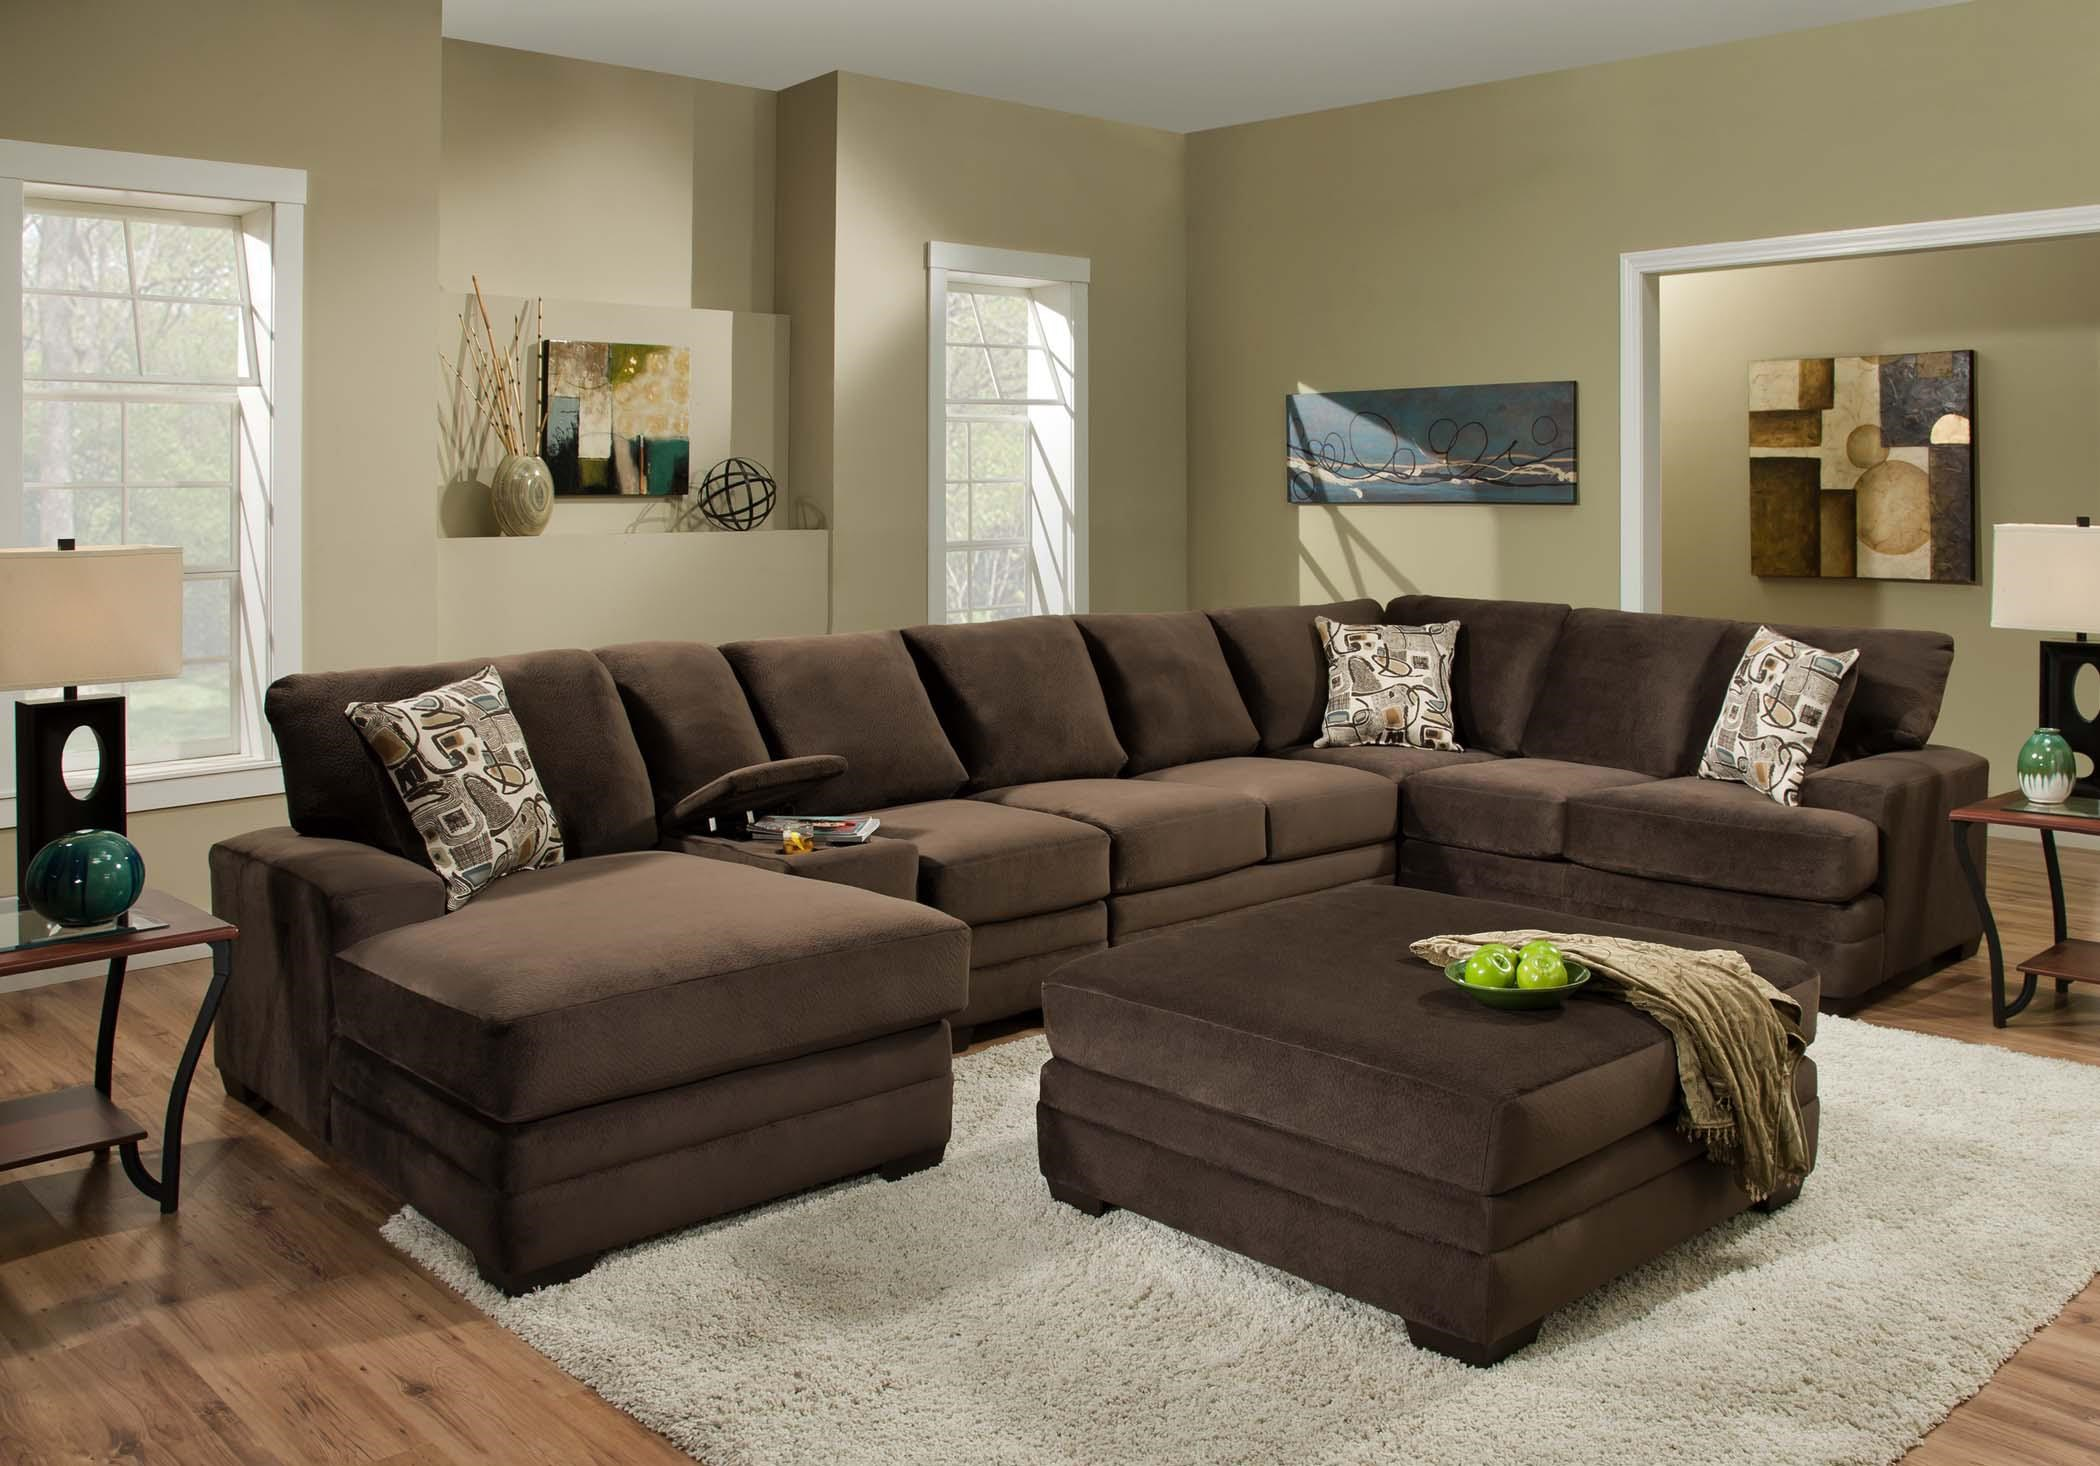 Awesome American Furniture 3500 Sectional Sofa